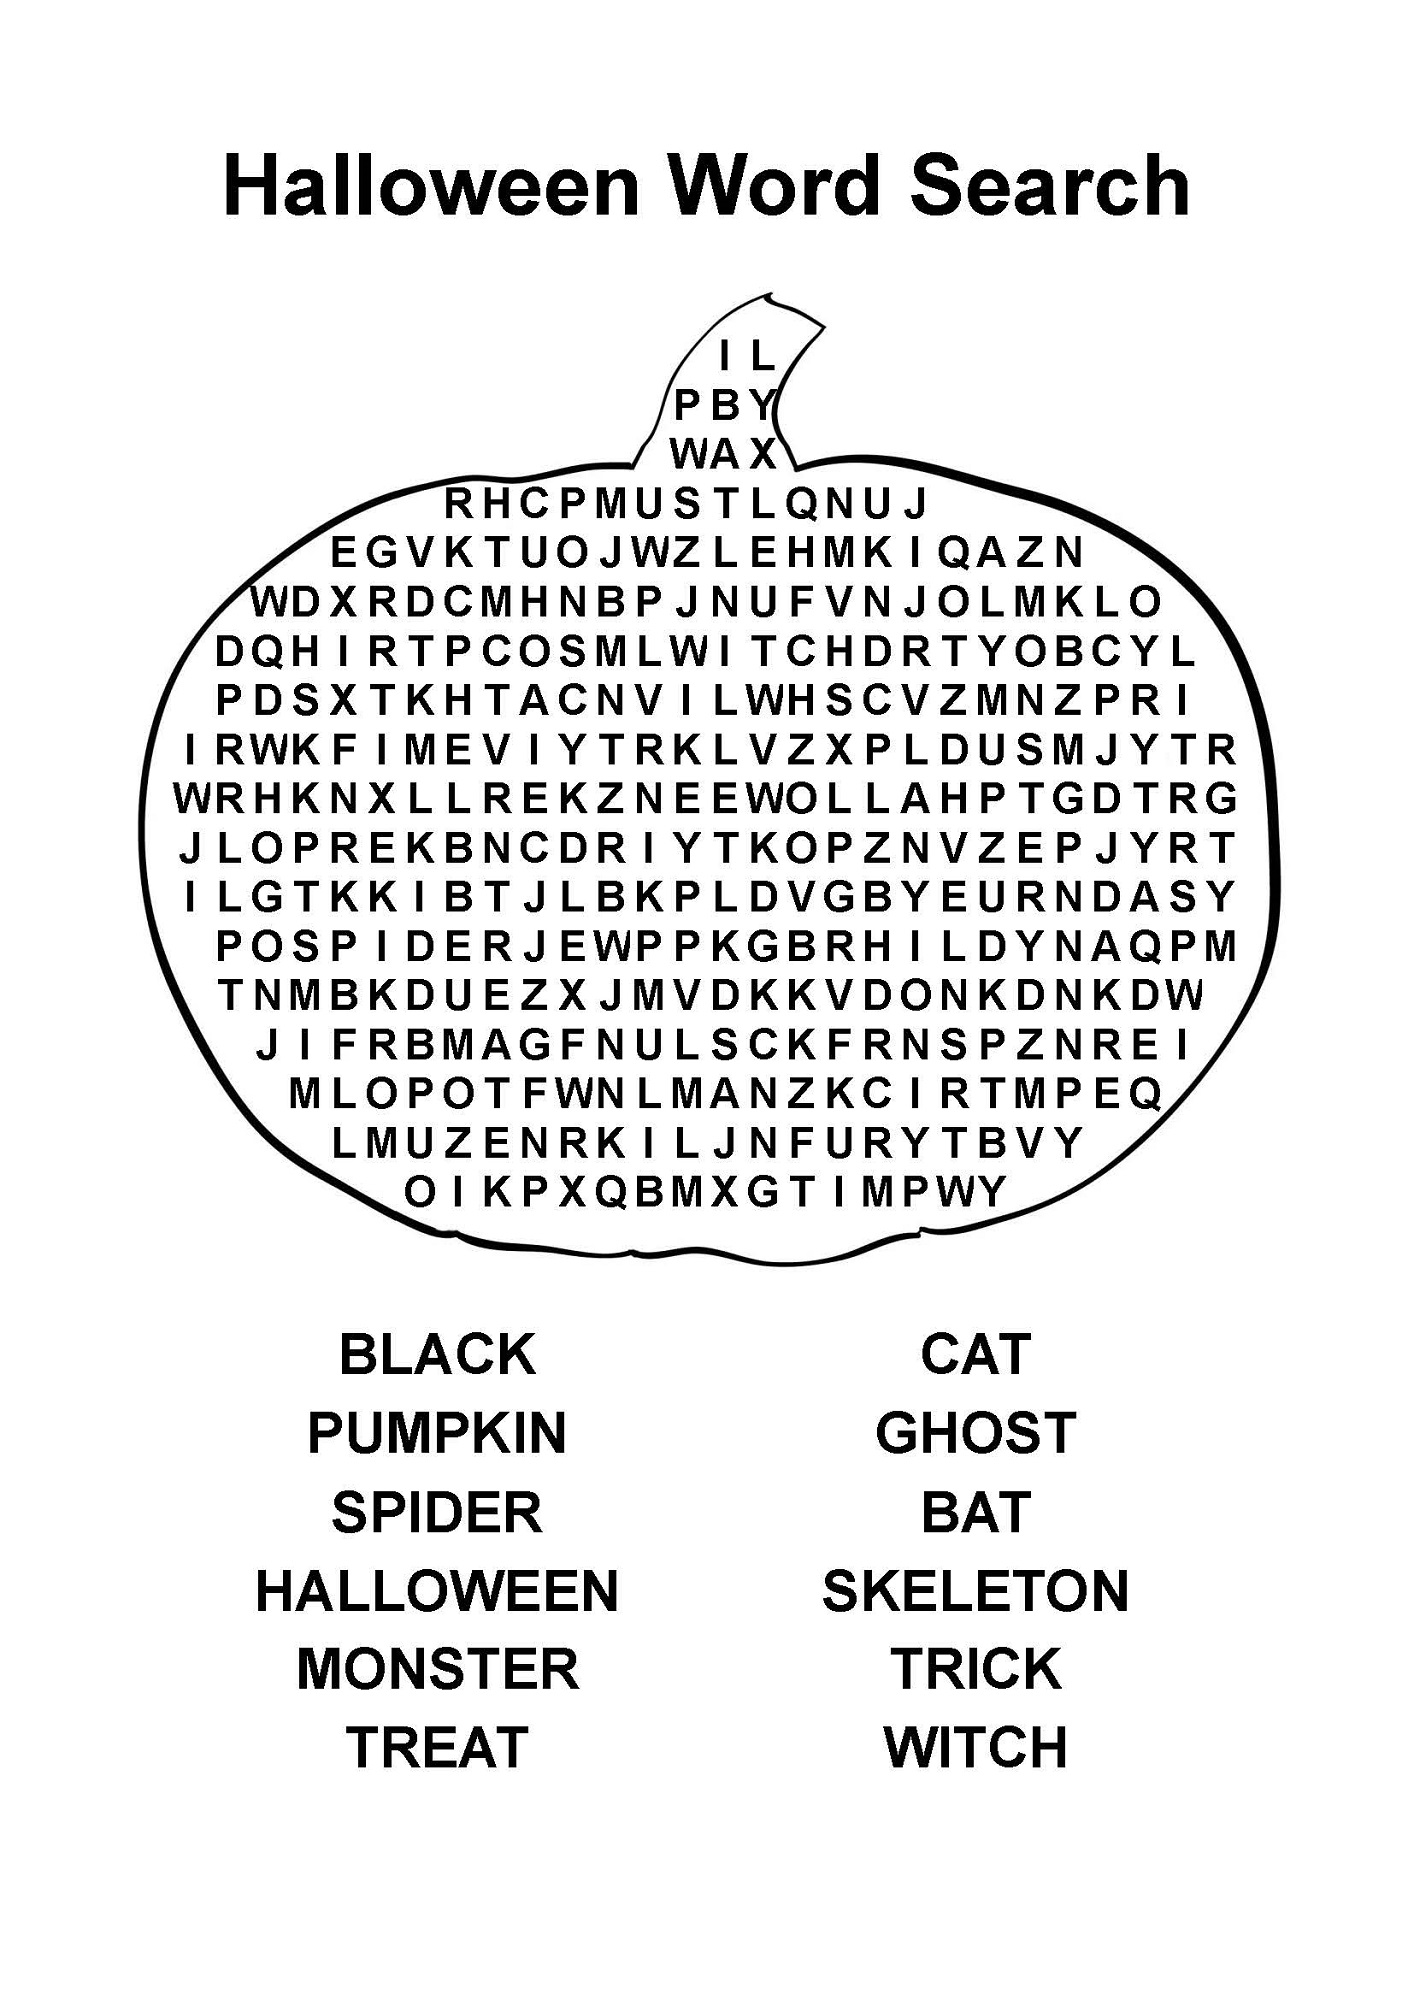 Word search easy halloween